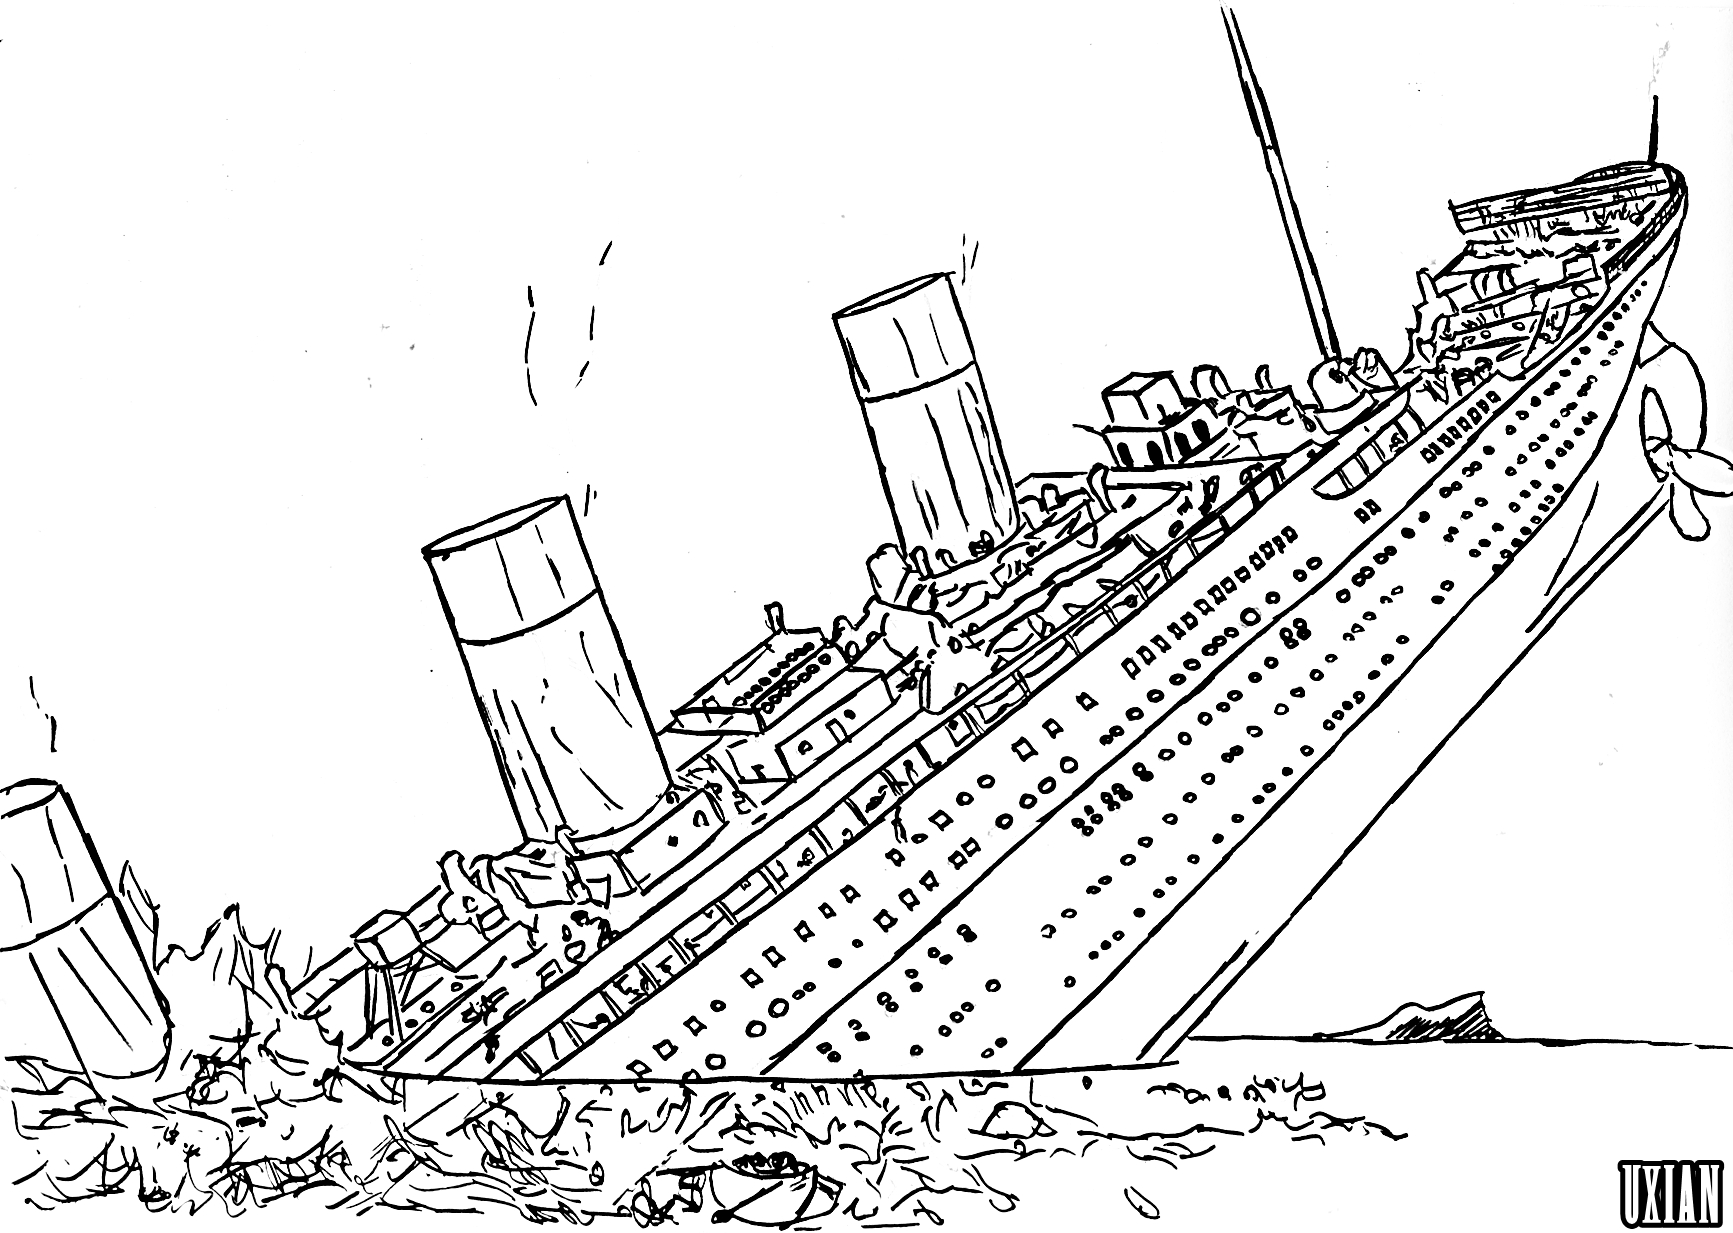 shipwreck titanic coloring pages titanic wreck pages coloring pages pages coloring titanic shipwreck